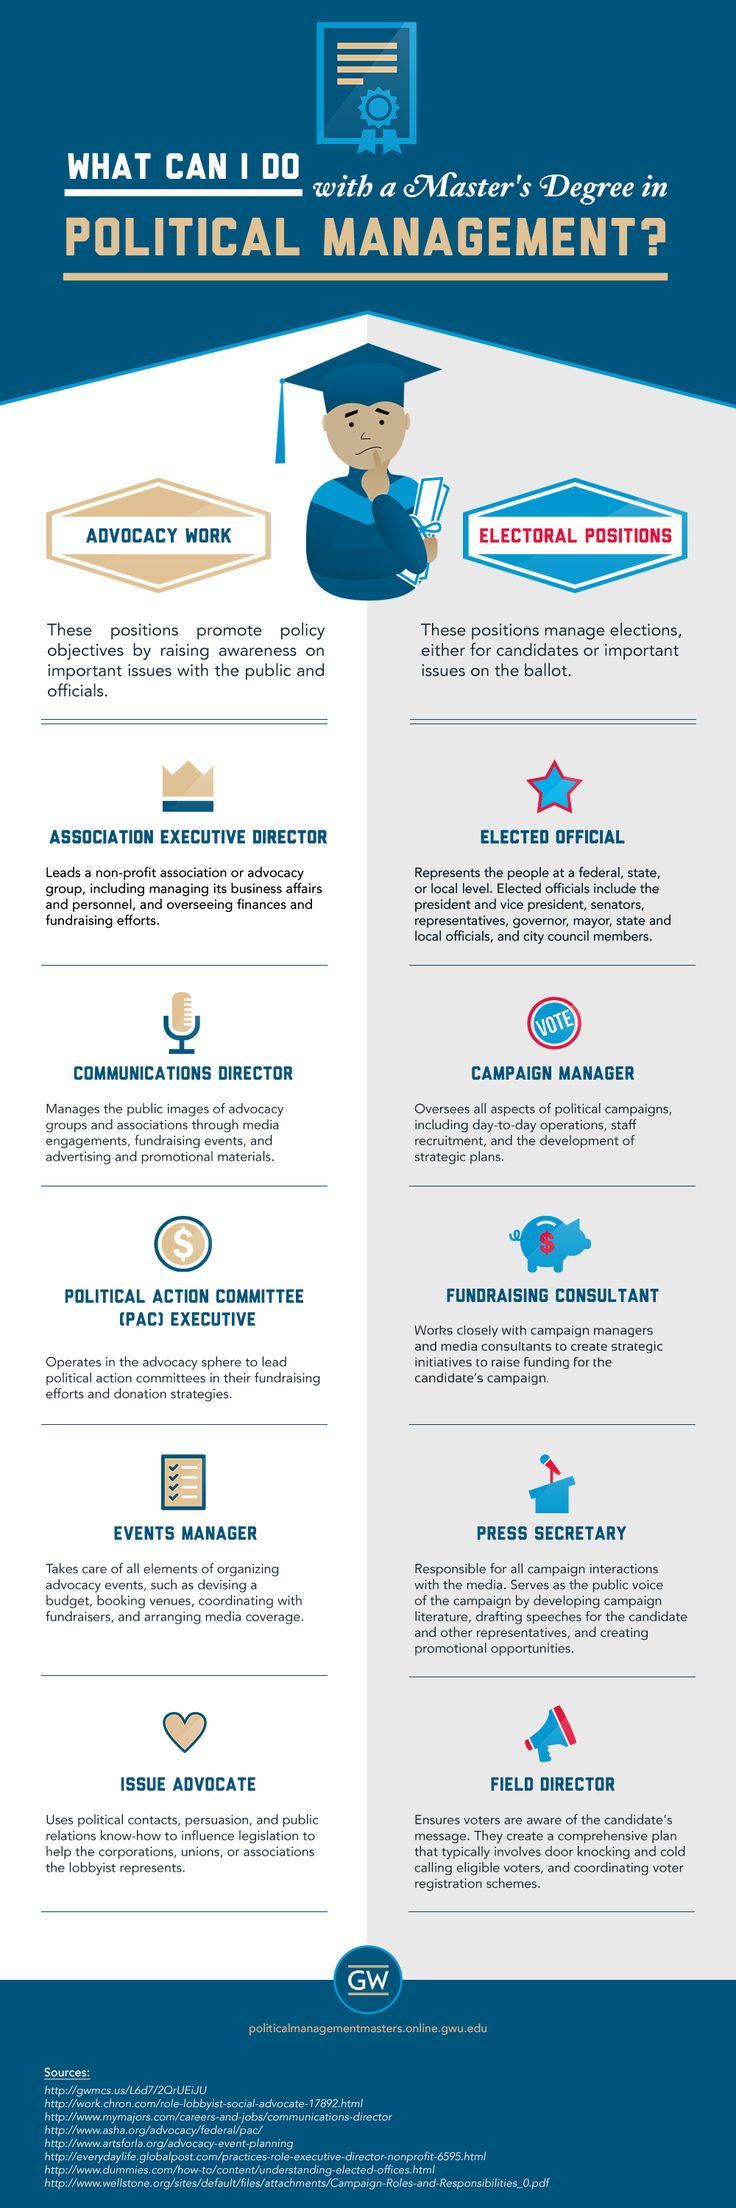 What Can I Do With a Master's Degree in Political Management #infographic #Career #Education